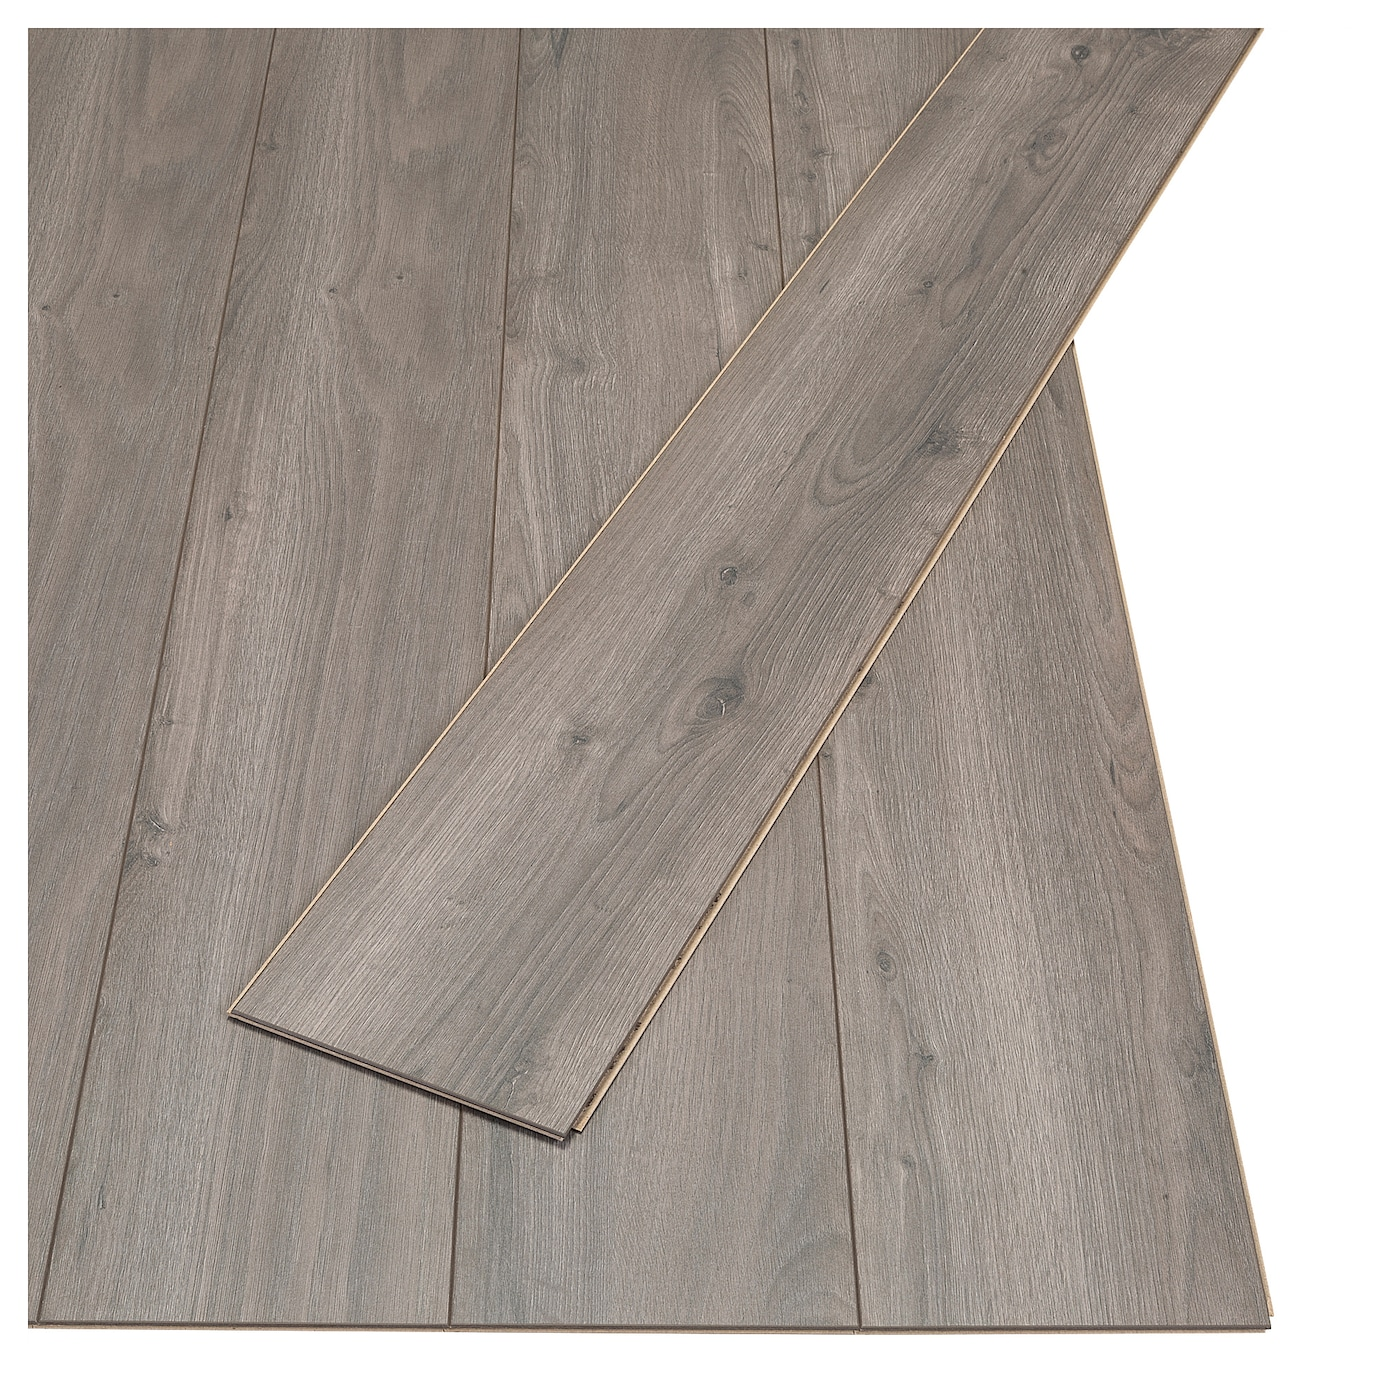 Ikea PrÄrie Laminated Flooring With System Is Easy To Lay No Adhesive Required